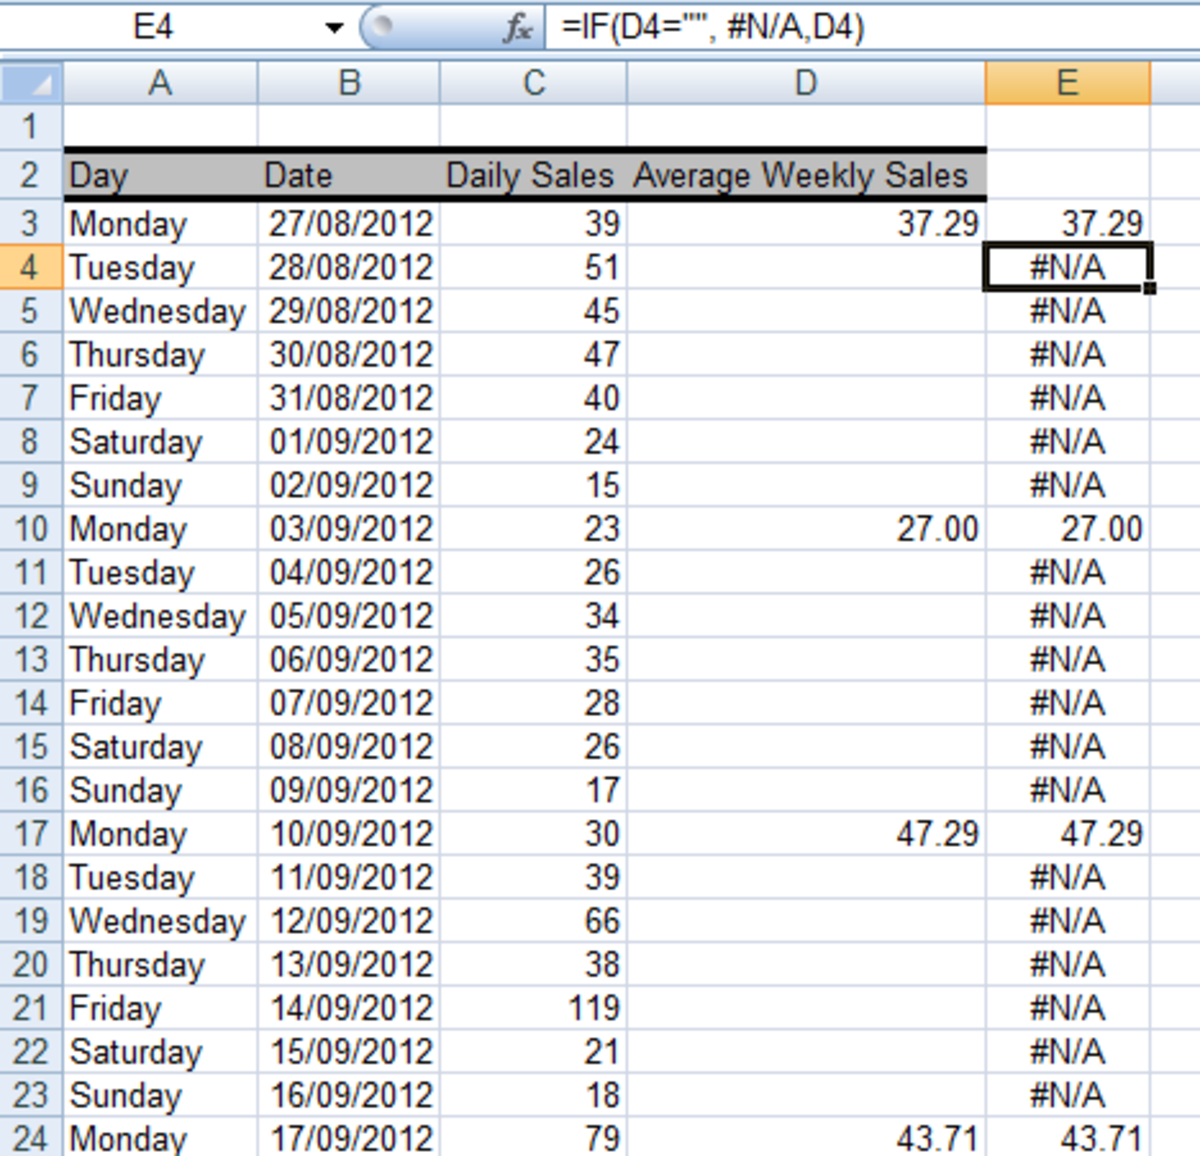 Ediblewildsus  Marvellous How To Get Excel  And  To Ignore Empty Cells In A Chart Or  With Exquisite Using The If Function In A Formula To Convert Empty Cells To Na With Beautiful Find Excel Password Also Vba Export To Excel In Addition Excel Activities For High School And Protect Selected Cells In Excel As Well As Add Series Name To Excel Chart Additionally Free Excel Worksheet From Turbofuturecom With Ediblewildsus  Exquisite How To Get Excel  And  To Ignore Empty Cells In A Chart Or  With Beautiful Using The If Function In A Formula To Convert Empty Cells To Na And Marvellous Find Excel Password Also Vba Export To Excel In Addition Excel Activities For High School From Turbofuturecom